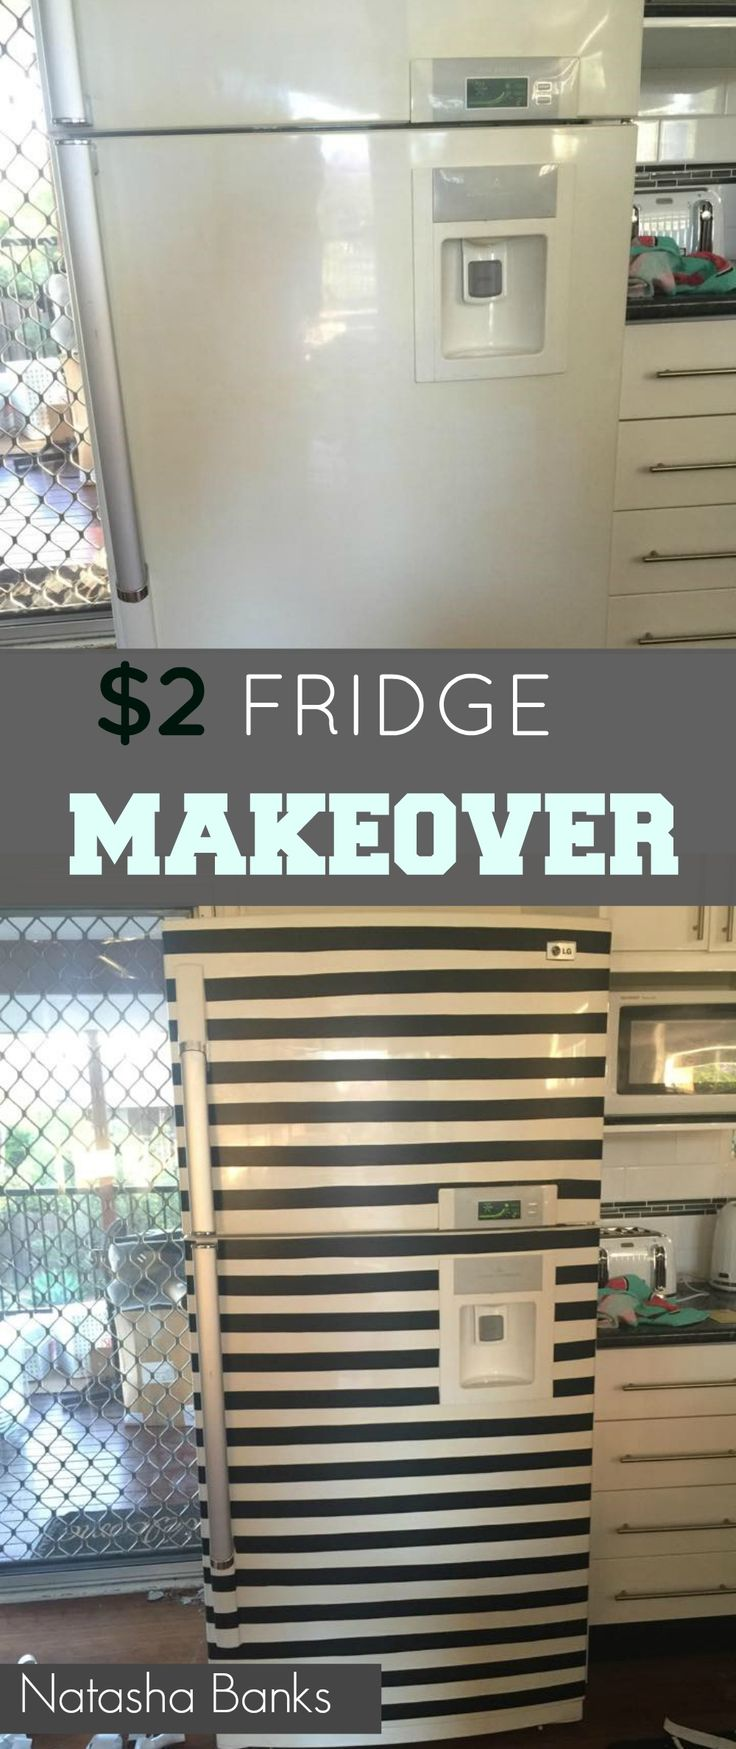 NATASHA'S $2 FRIDGE MAKEOVER | Grillo Designs